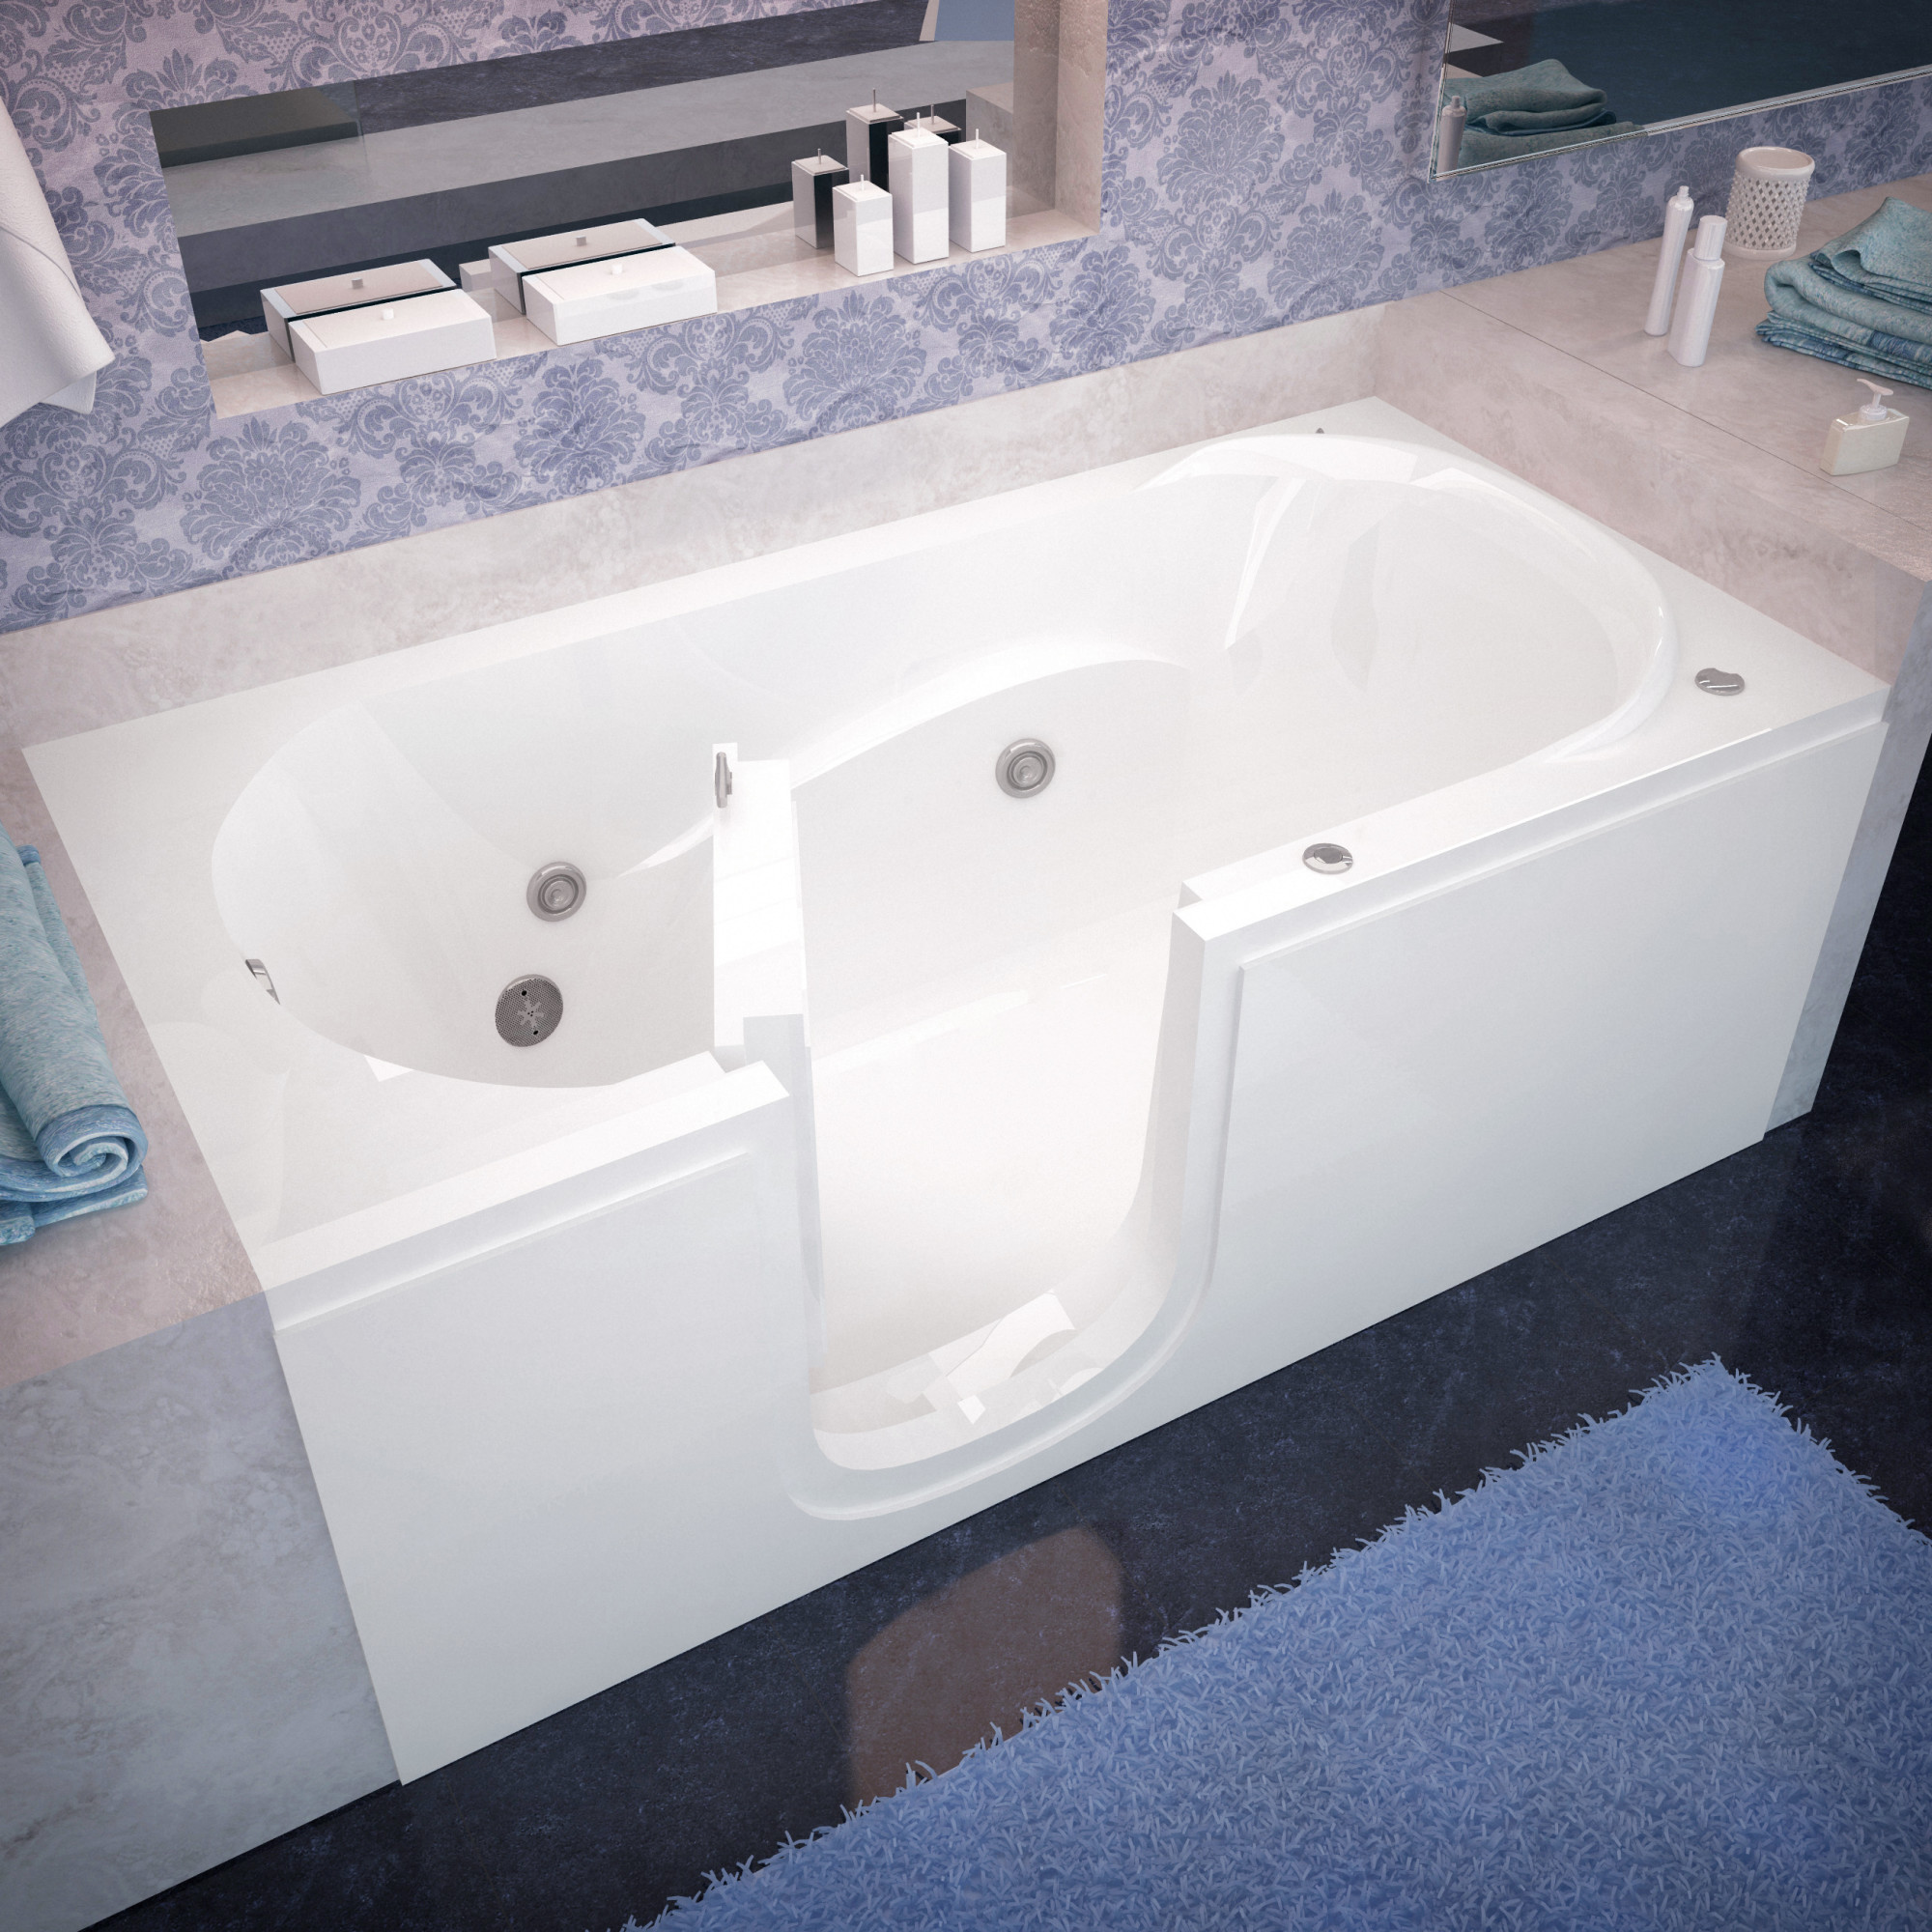 "Avano AV3060SILH Step-In Tubs 59-5/8"" Acrylic Whirlpool Bathtub for Alcove Installations with Left Drain"